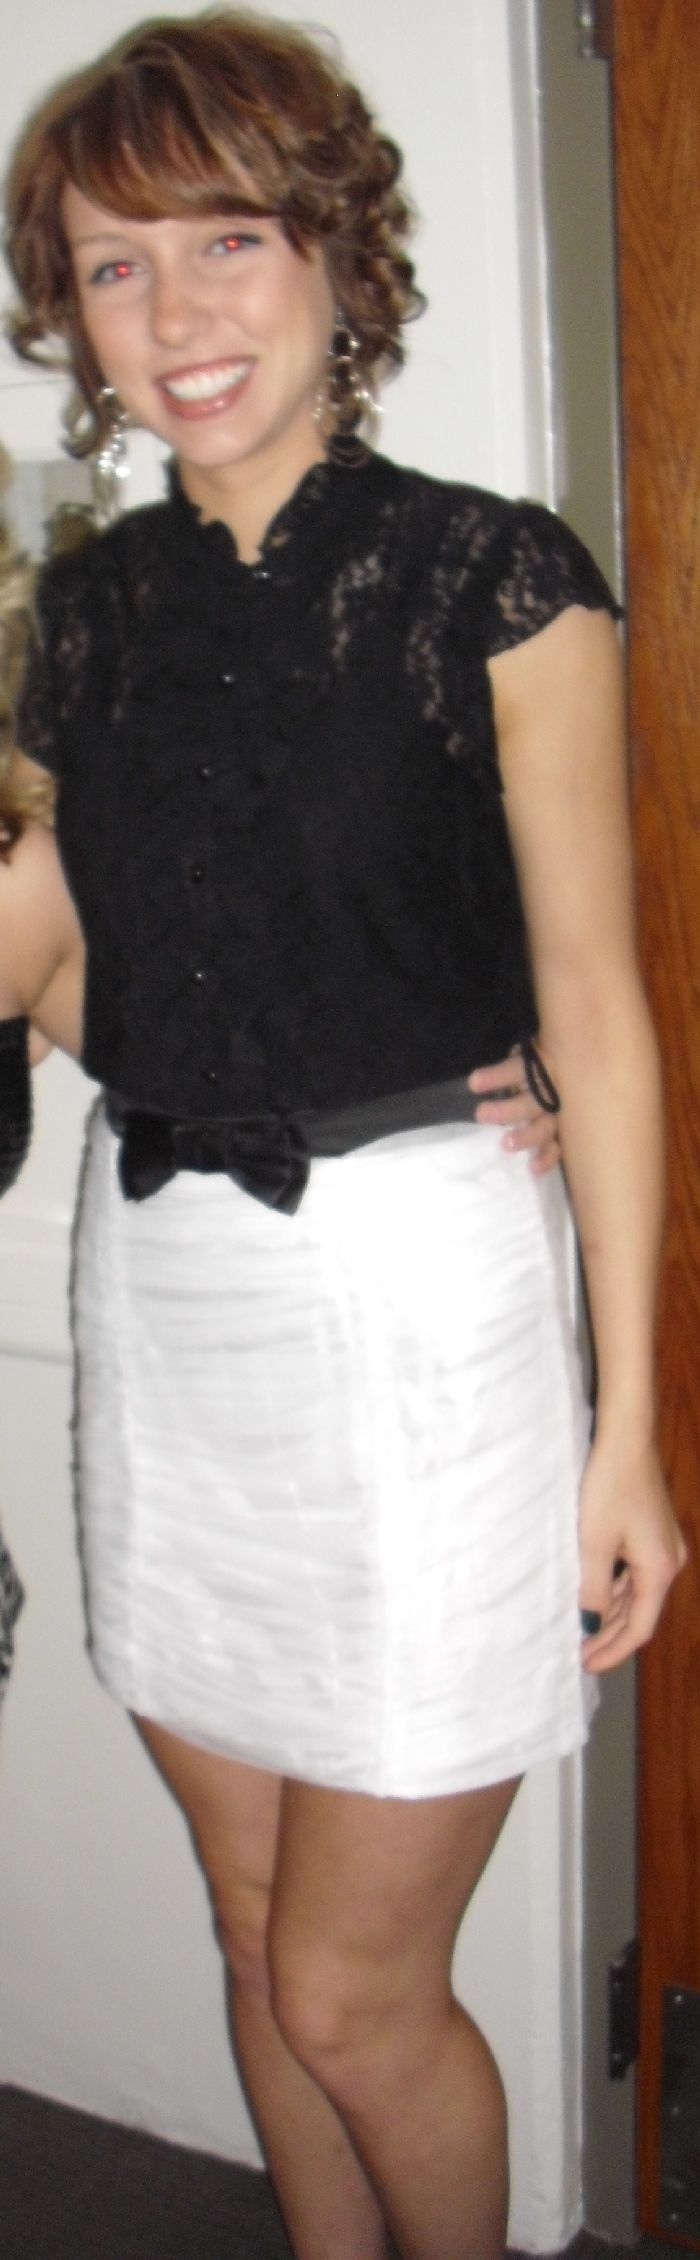 My cute lace shirt with cute white bowtie skirt